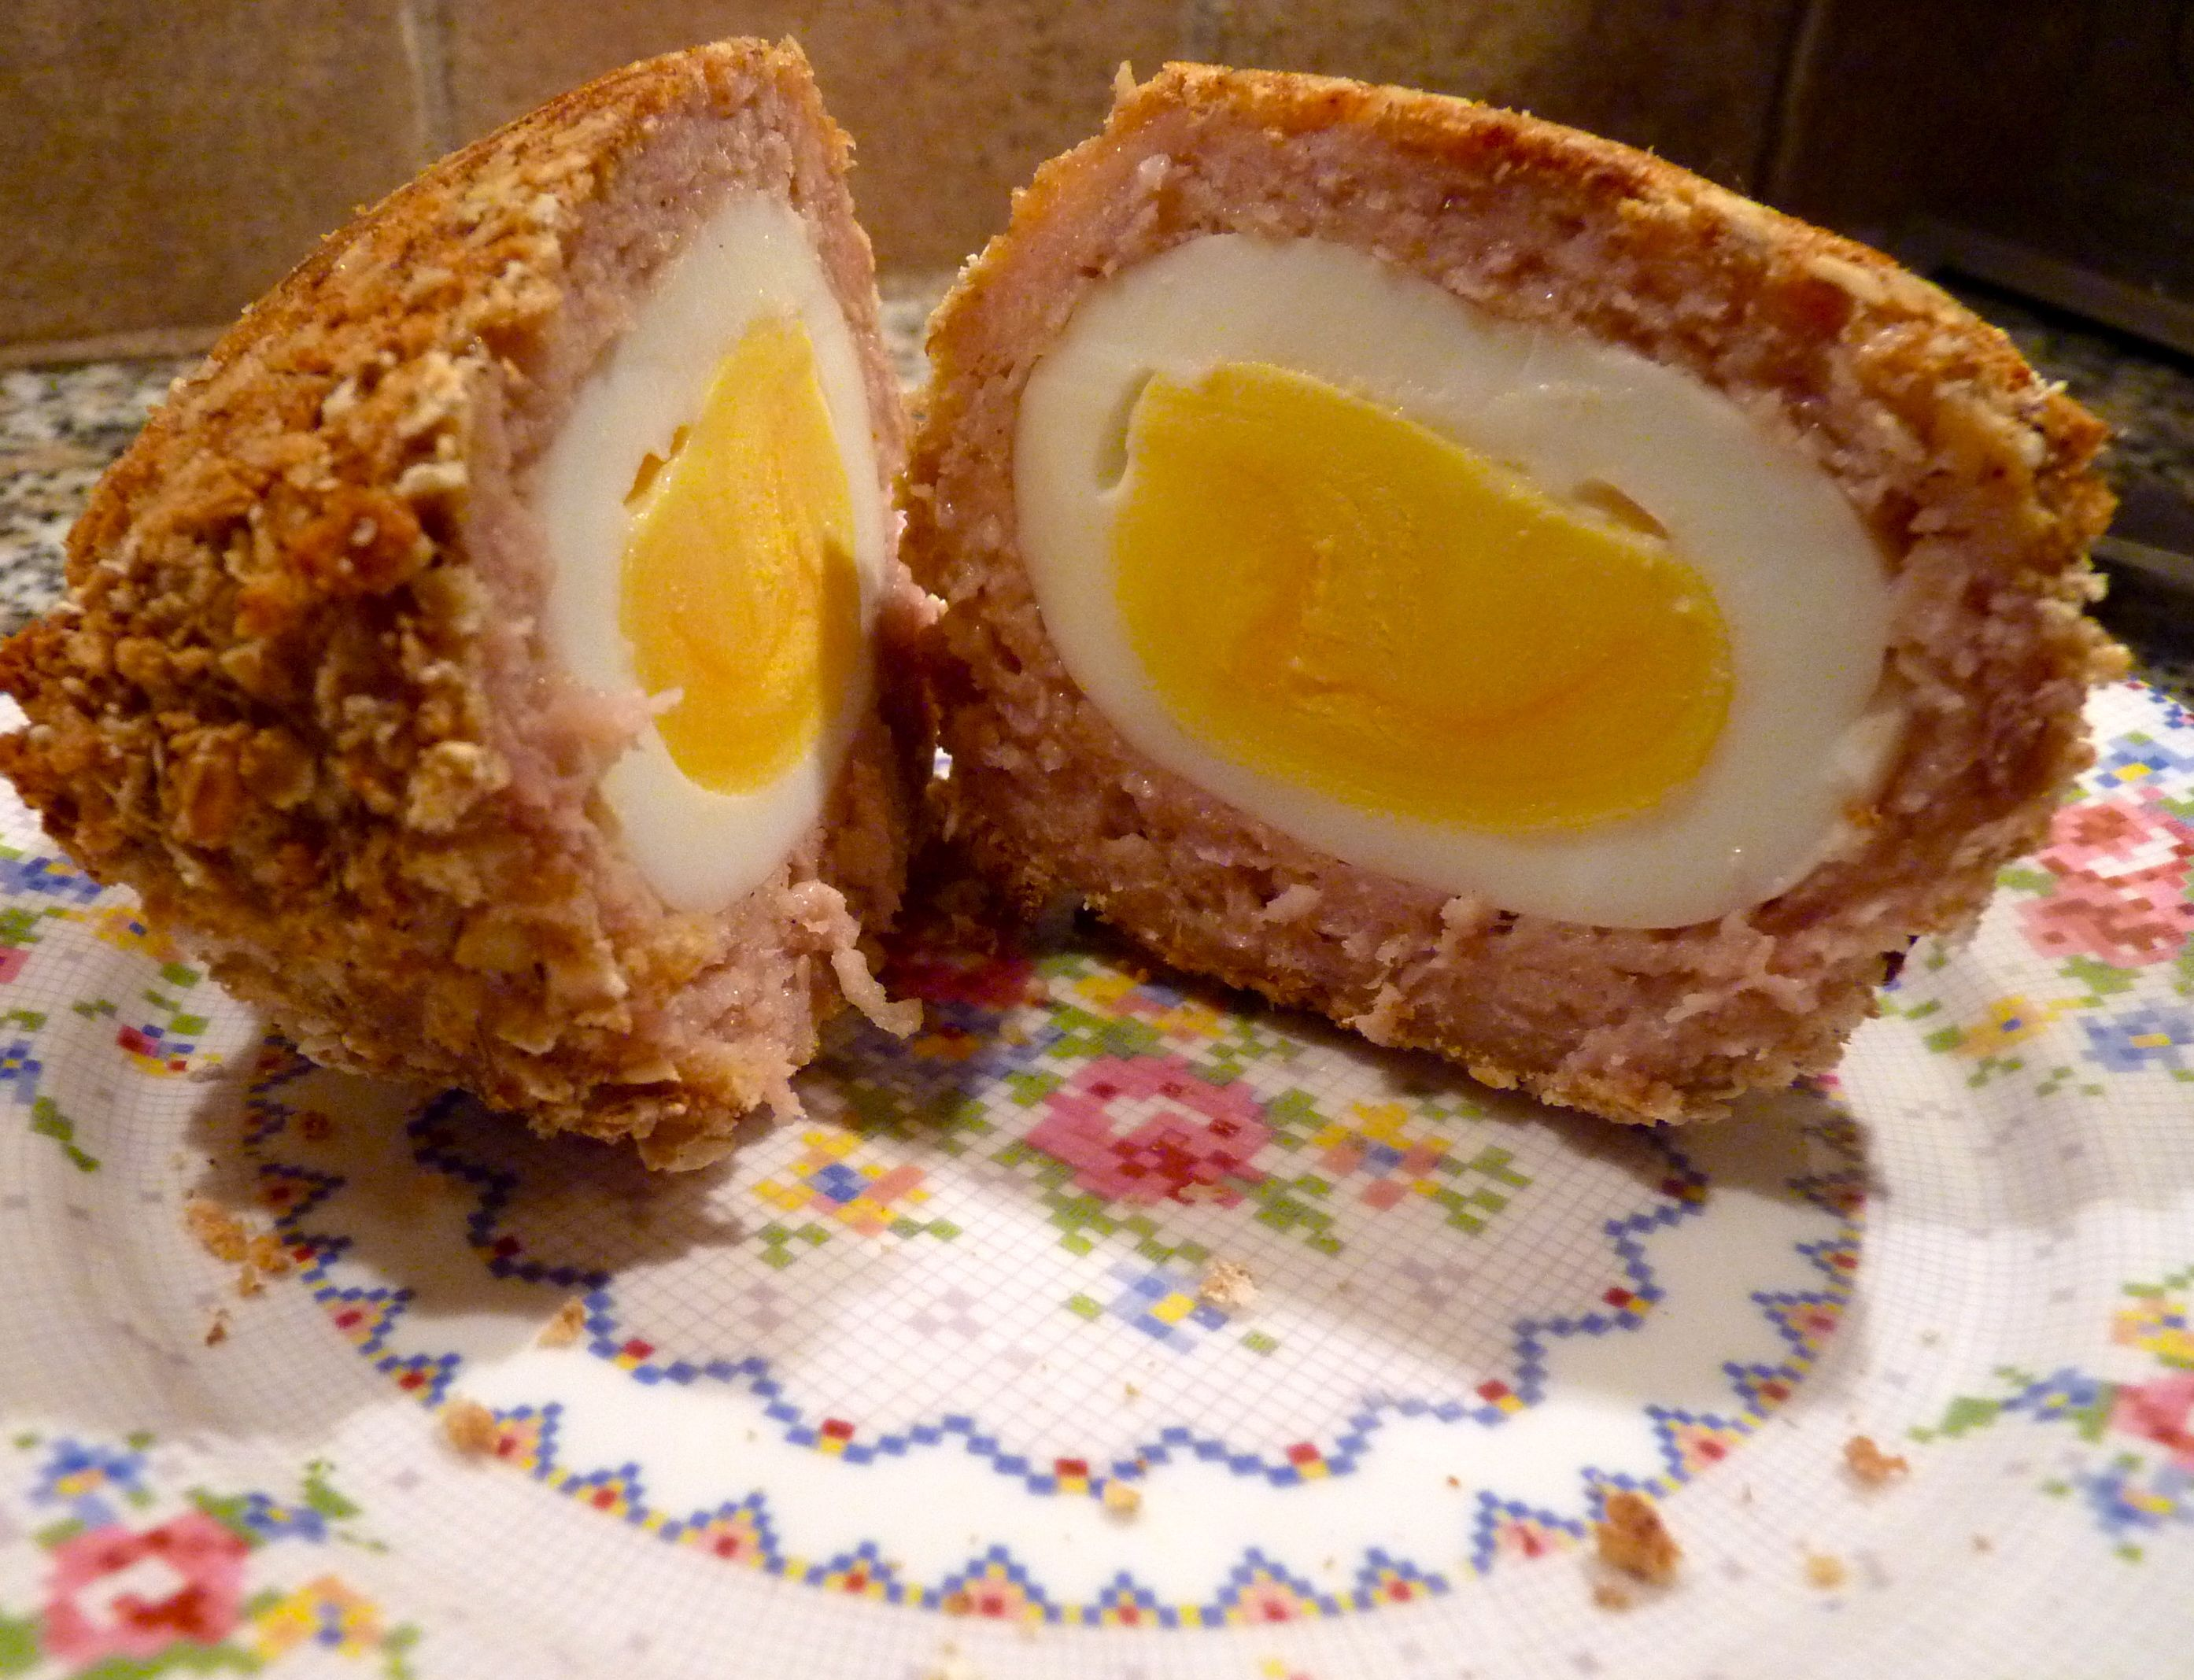 HQ Scotch Egg Wallpapers | File 756.83Kb